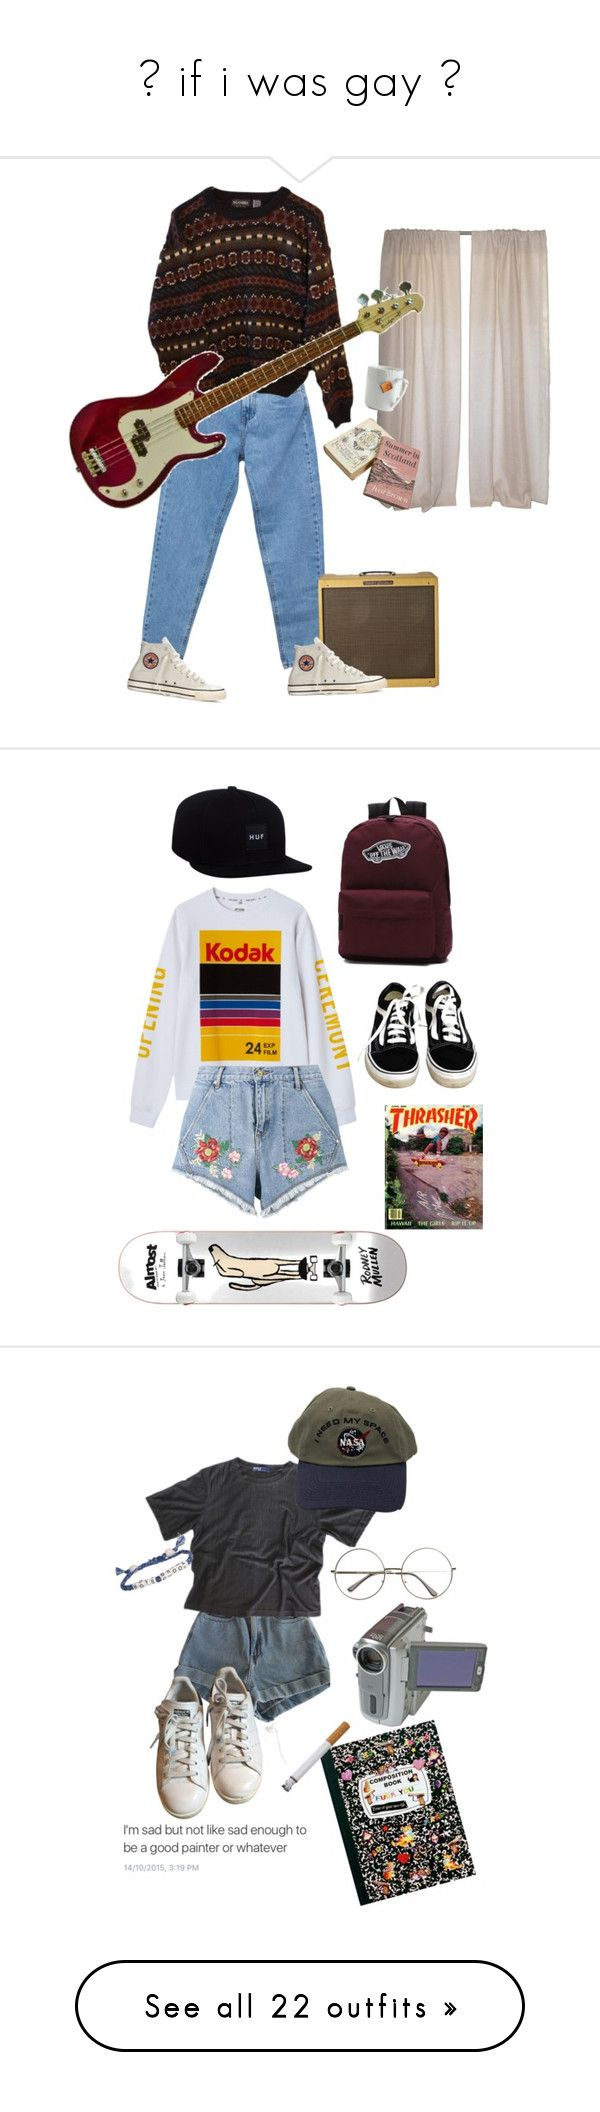 """""""♡ if i was gay ♡"""" by daytildark ❤ liked on Polyvore featuring Pull&Bear, Converse, INDIE HAIR, le mouton noir & co., Vans, House of Holland, American Apparel, adidas, Venessa Arizaga and Maison d'usQ"""